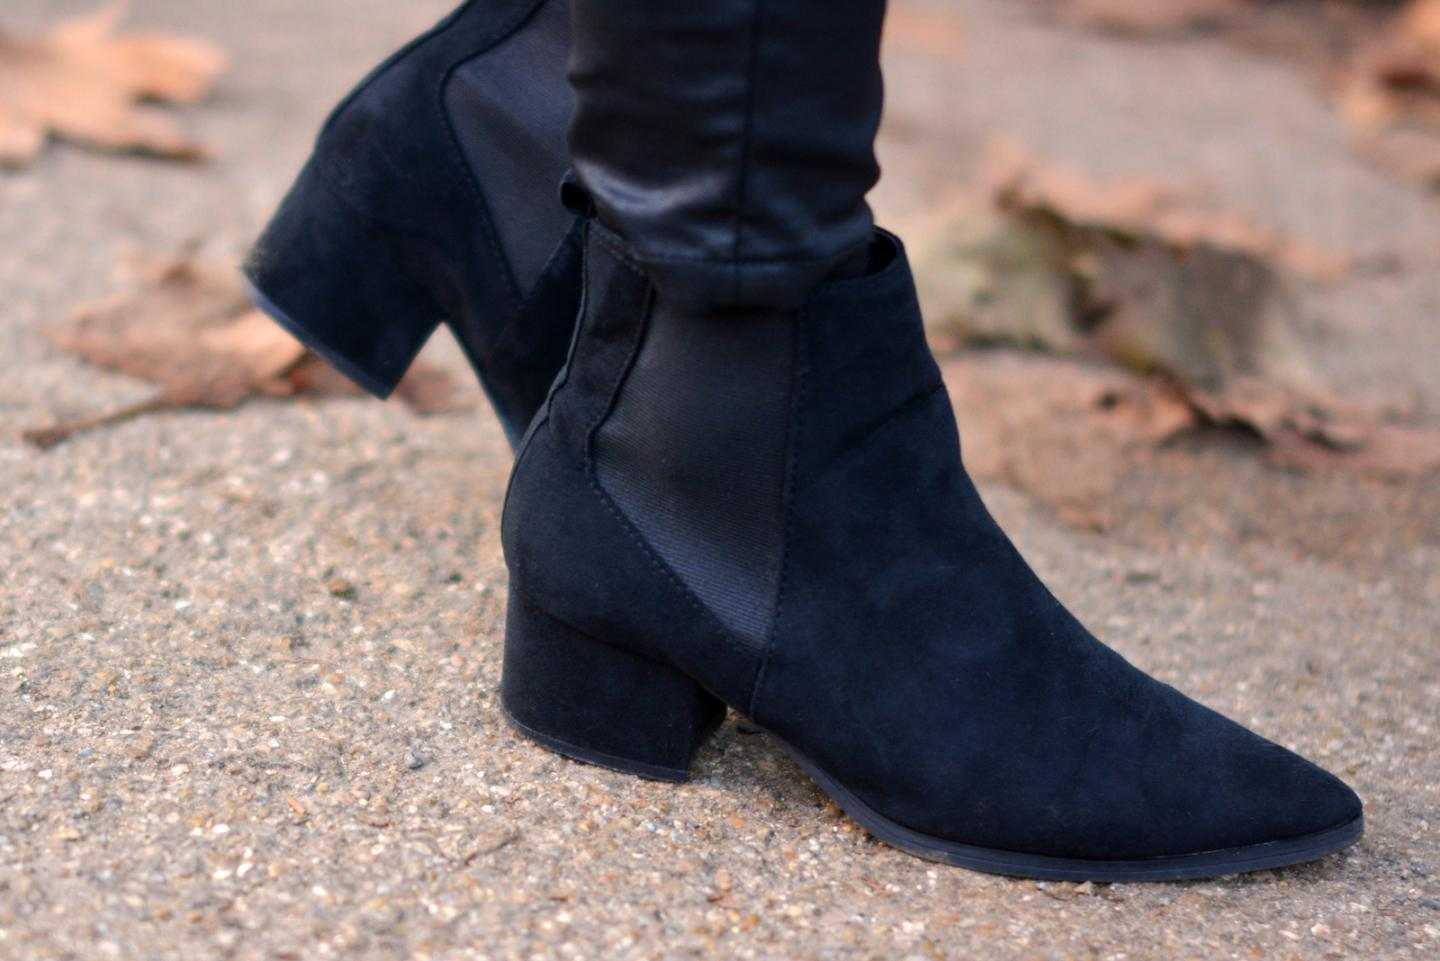 EJSTYLE - M&S pointed toe black chelsea ankle boots